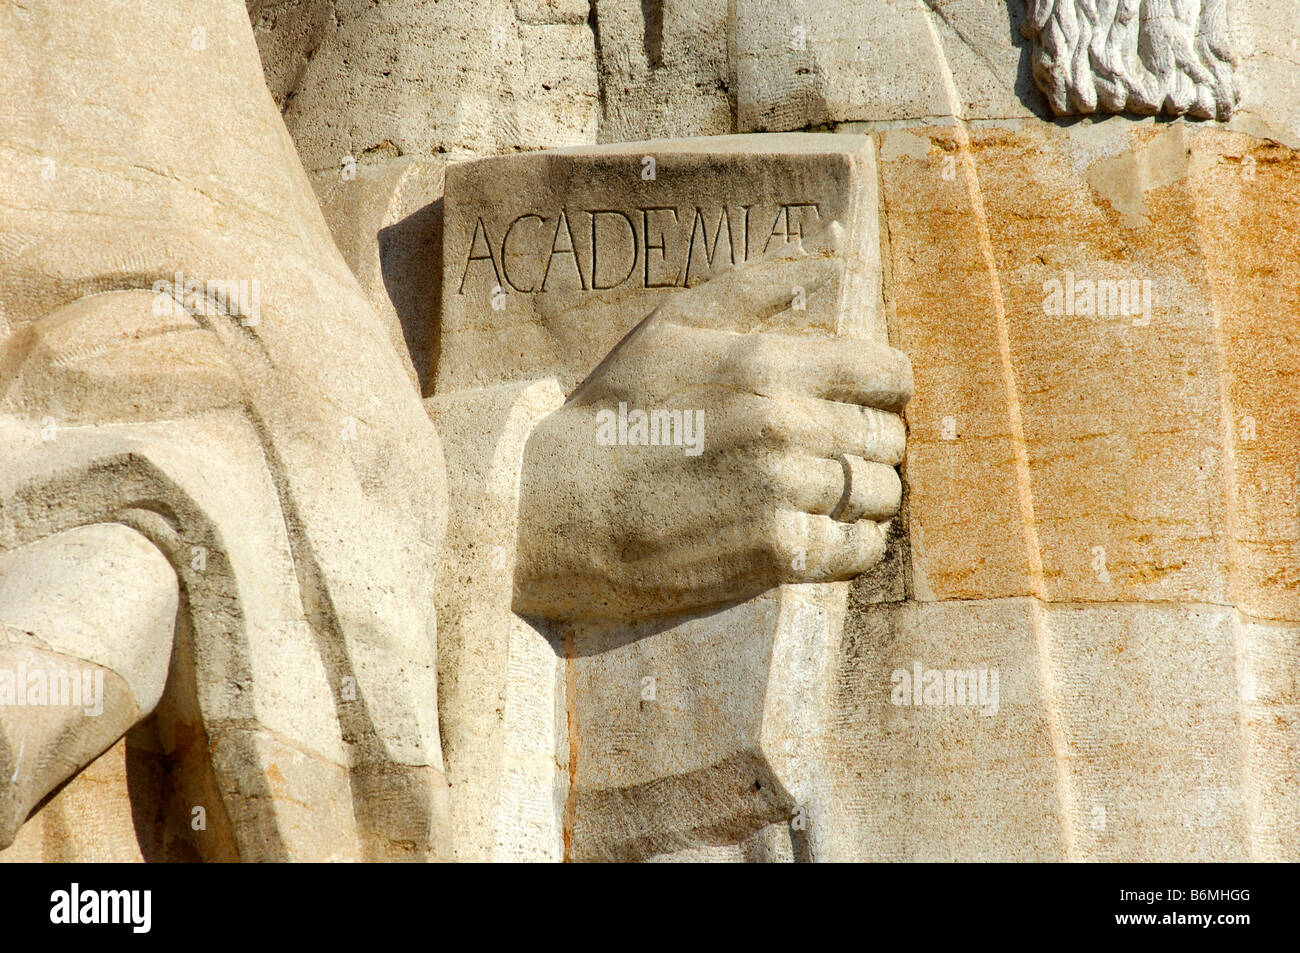 Detail of the sculpture of Theodore Beza with a book in his hand, Wall of Reformers, Geneva, Switzerland - Stock Image